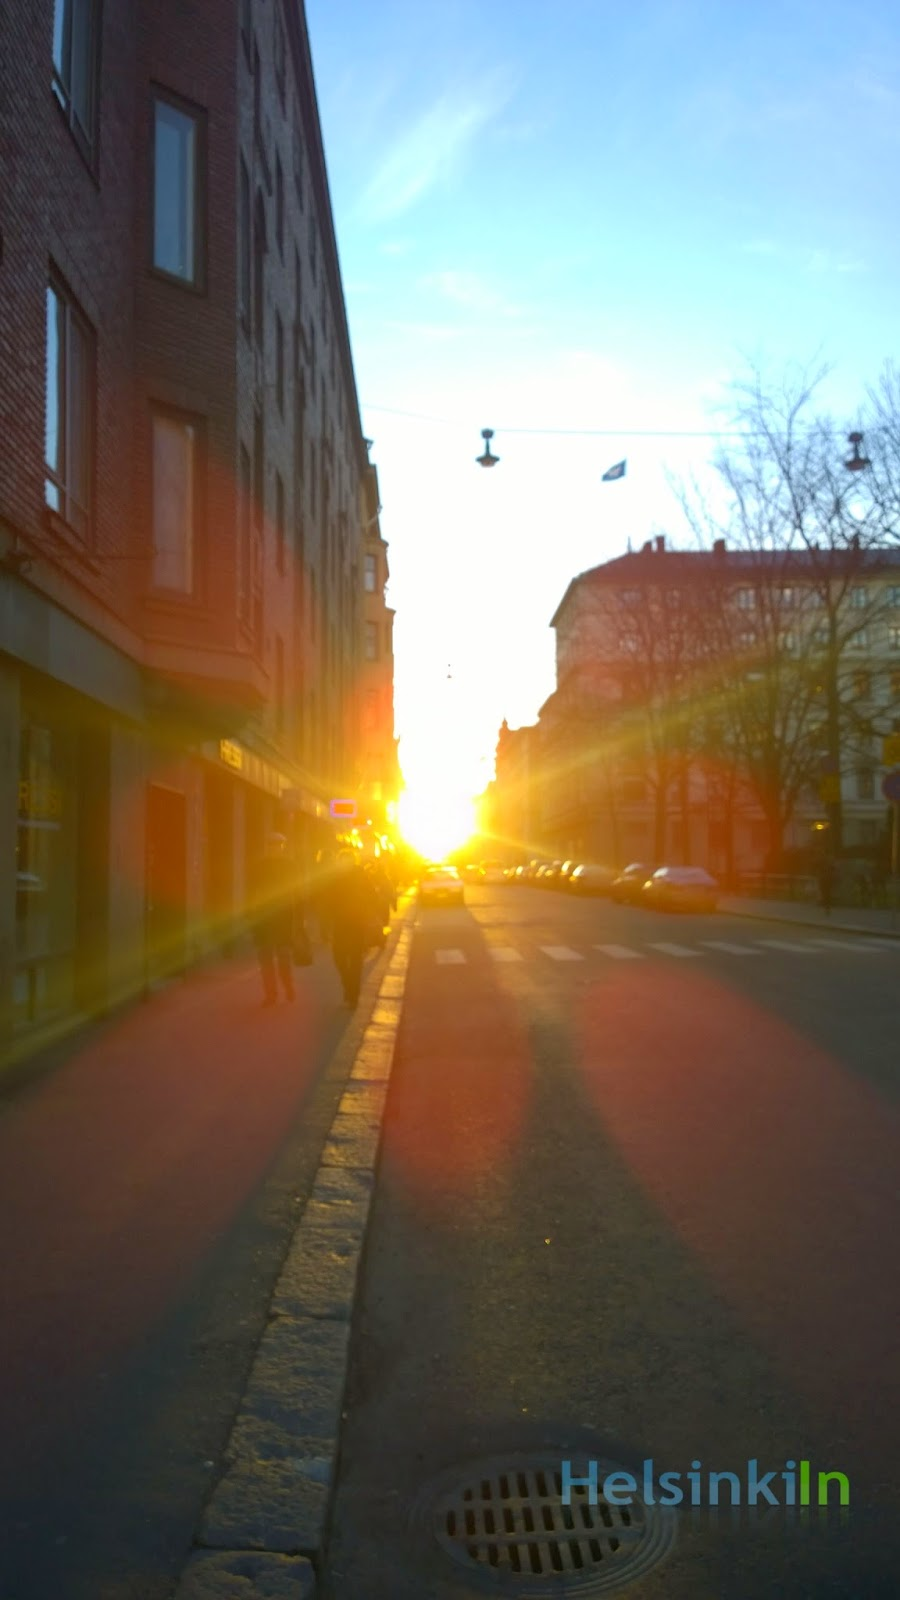 Bight light in the streets of Helsinki